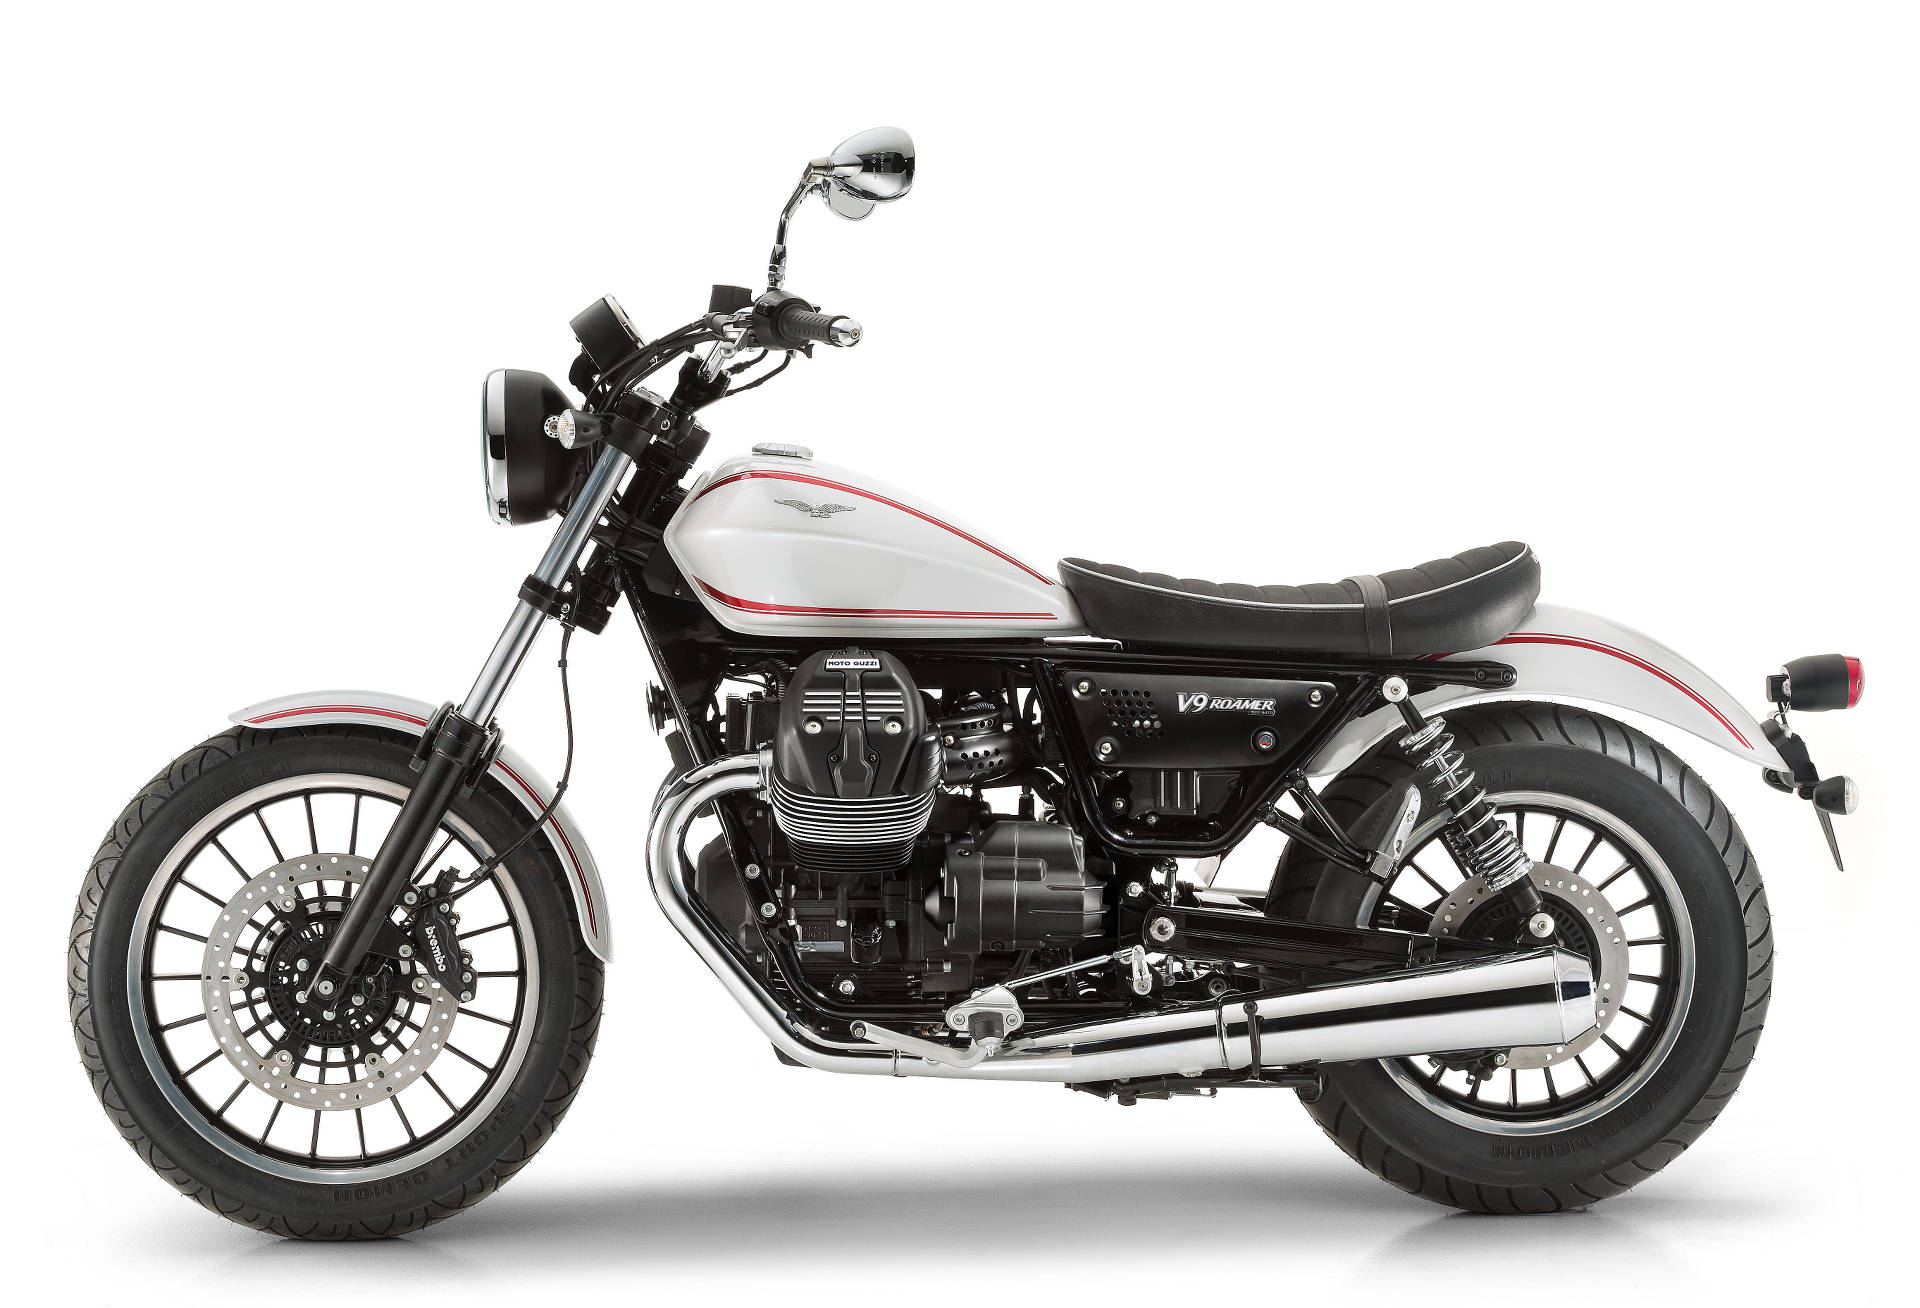 new moto guzzi v9 roamer and bobber feature 850cc v twin. Black Bedroom Furniture Sets. Home Design Ideas